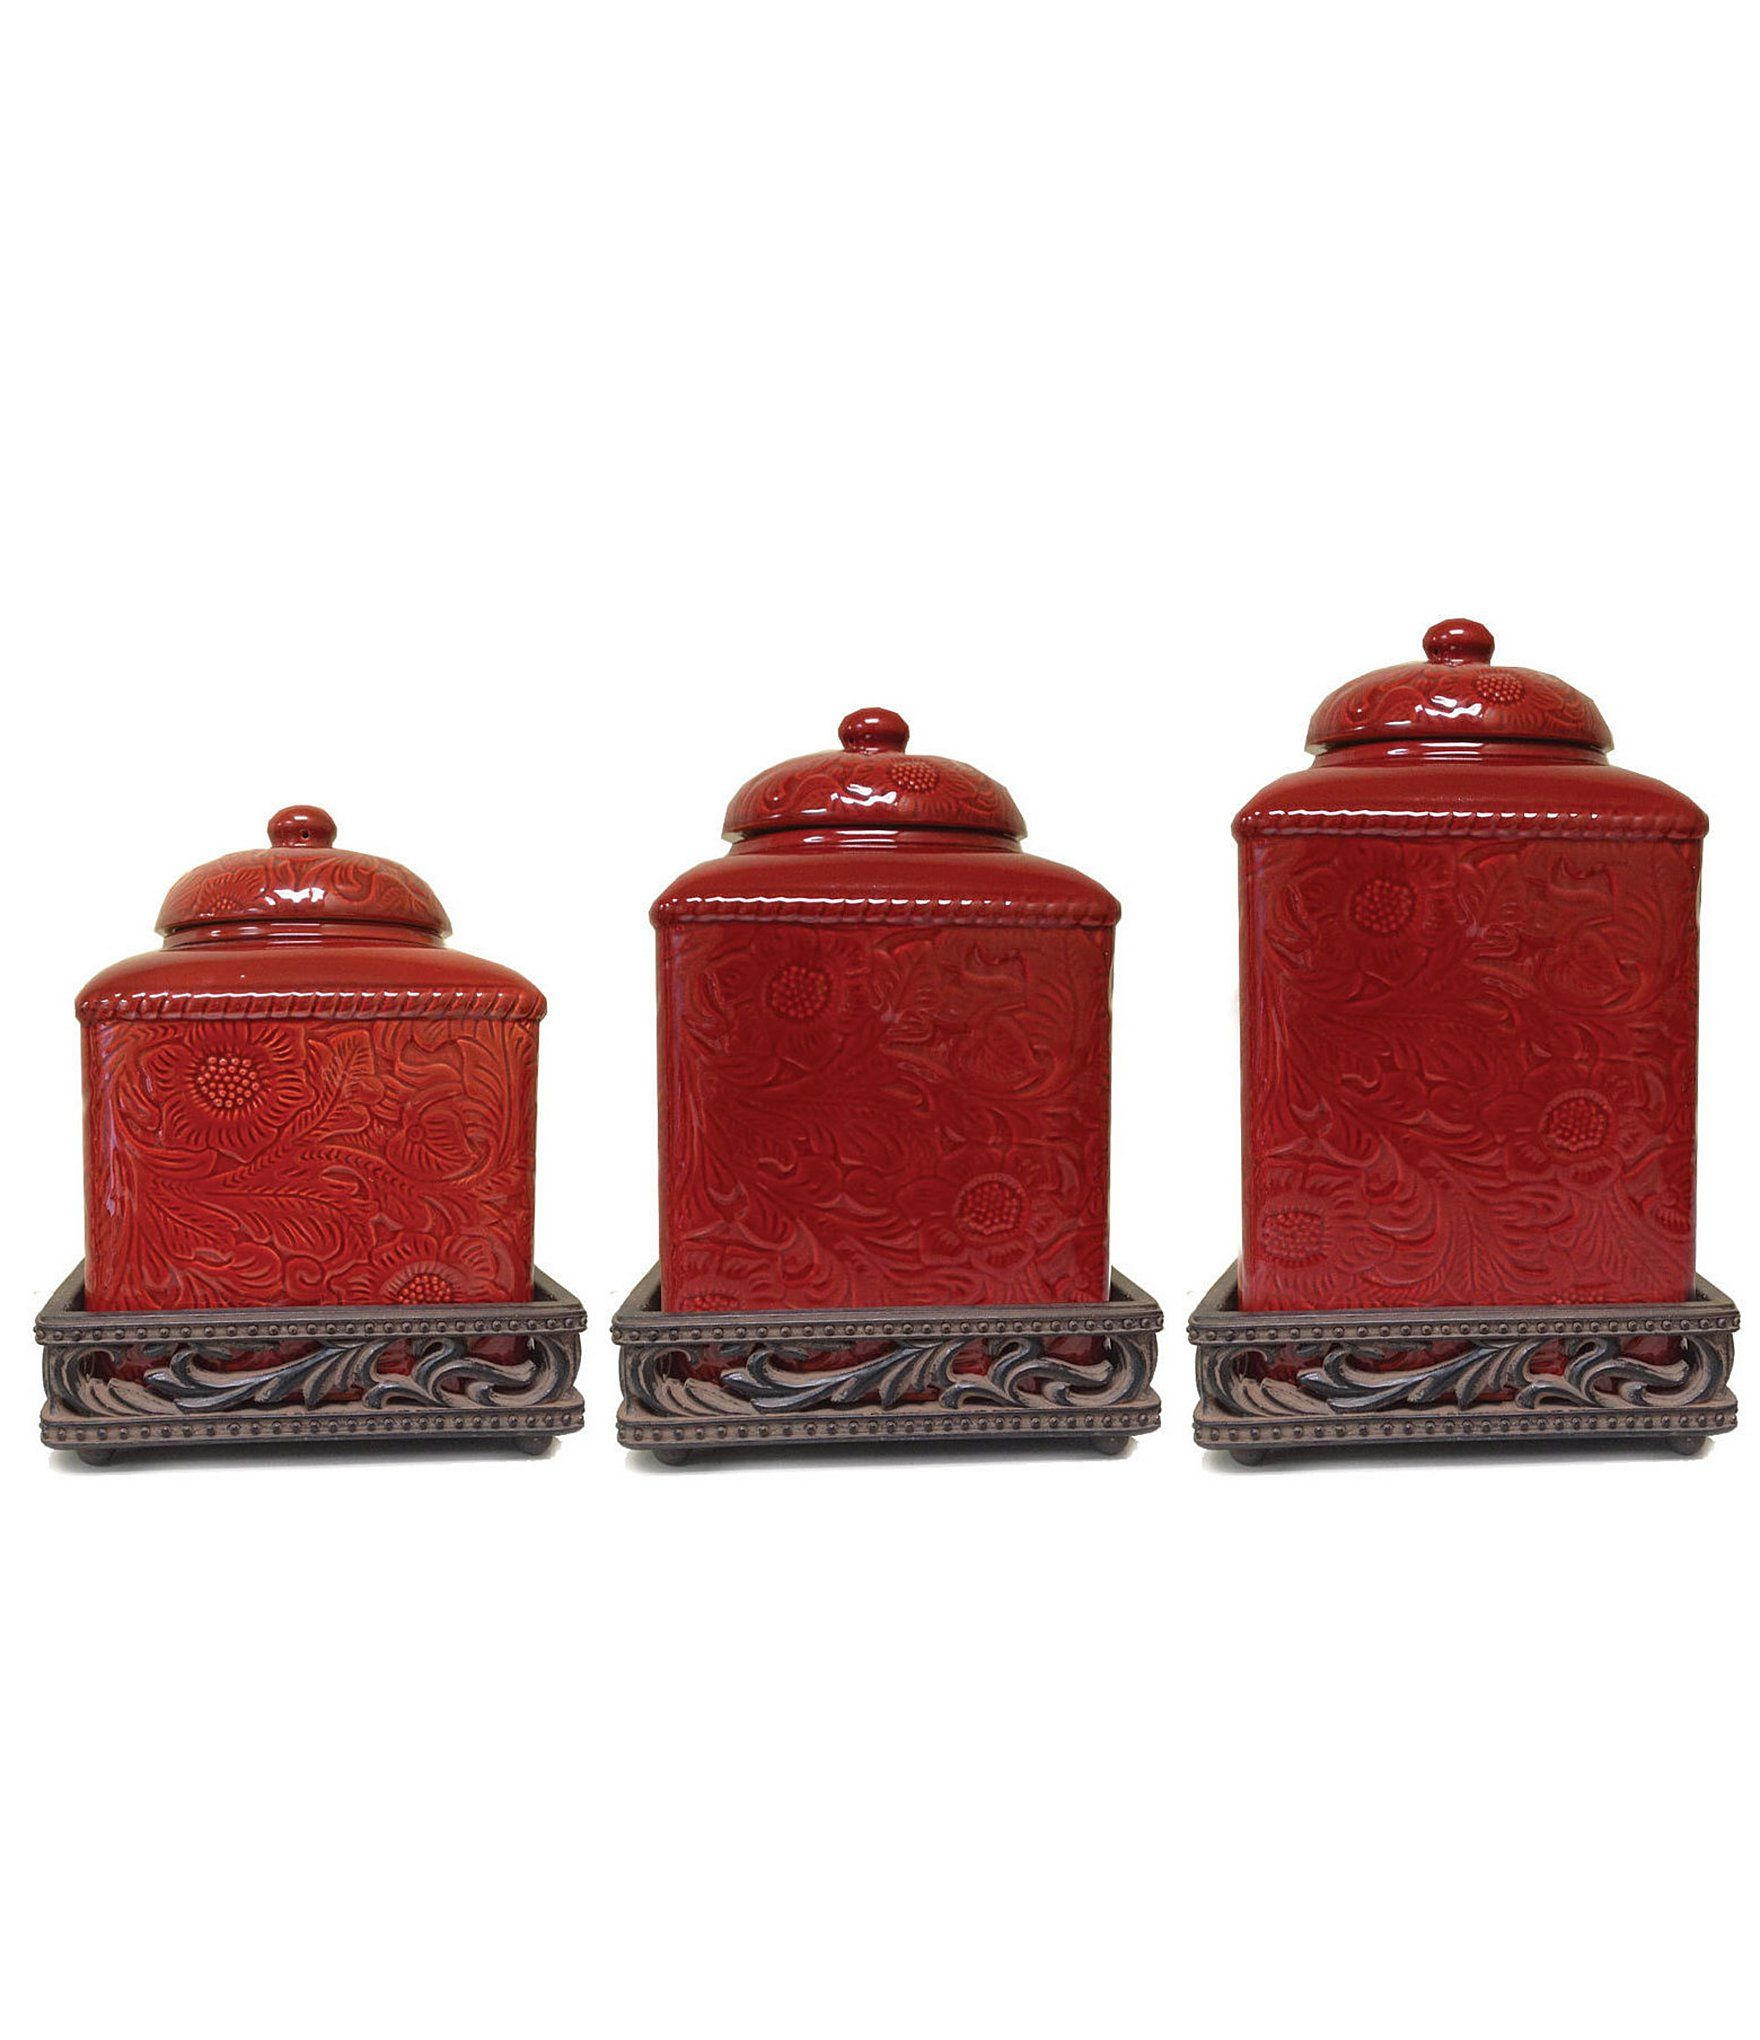 dillards kitchen canisters hiend accents savannah canister set dillard s in 2020 kitchen canister sets kitchen 5424